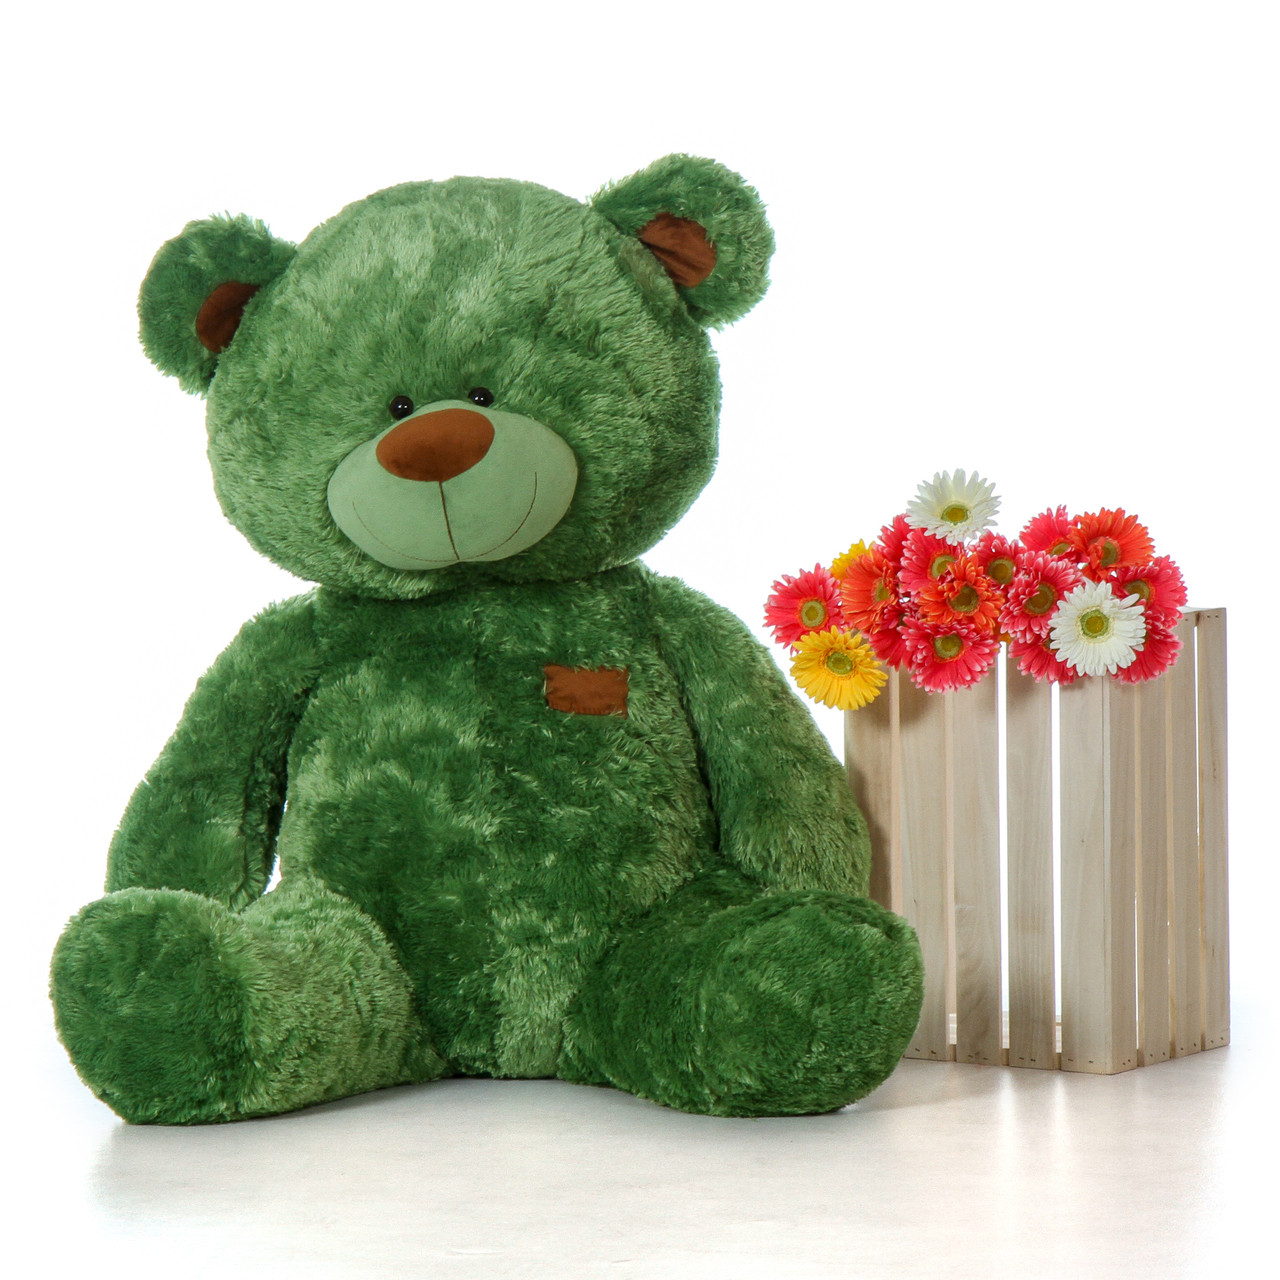 Image result for saint patricks day flowers and bear